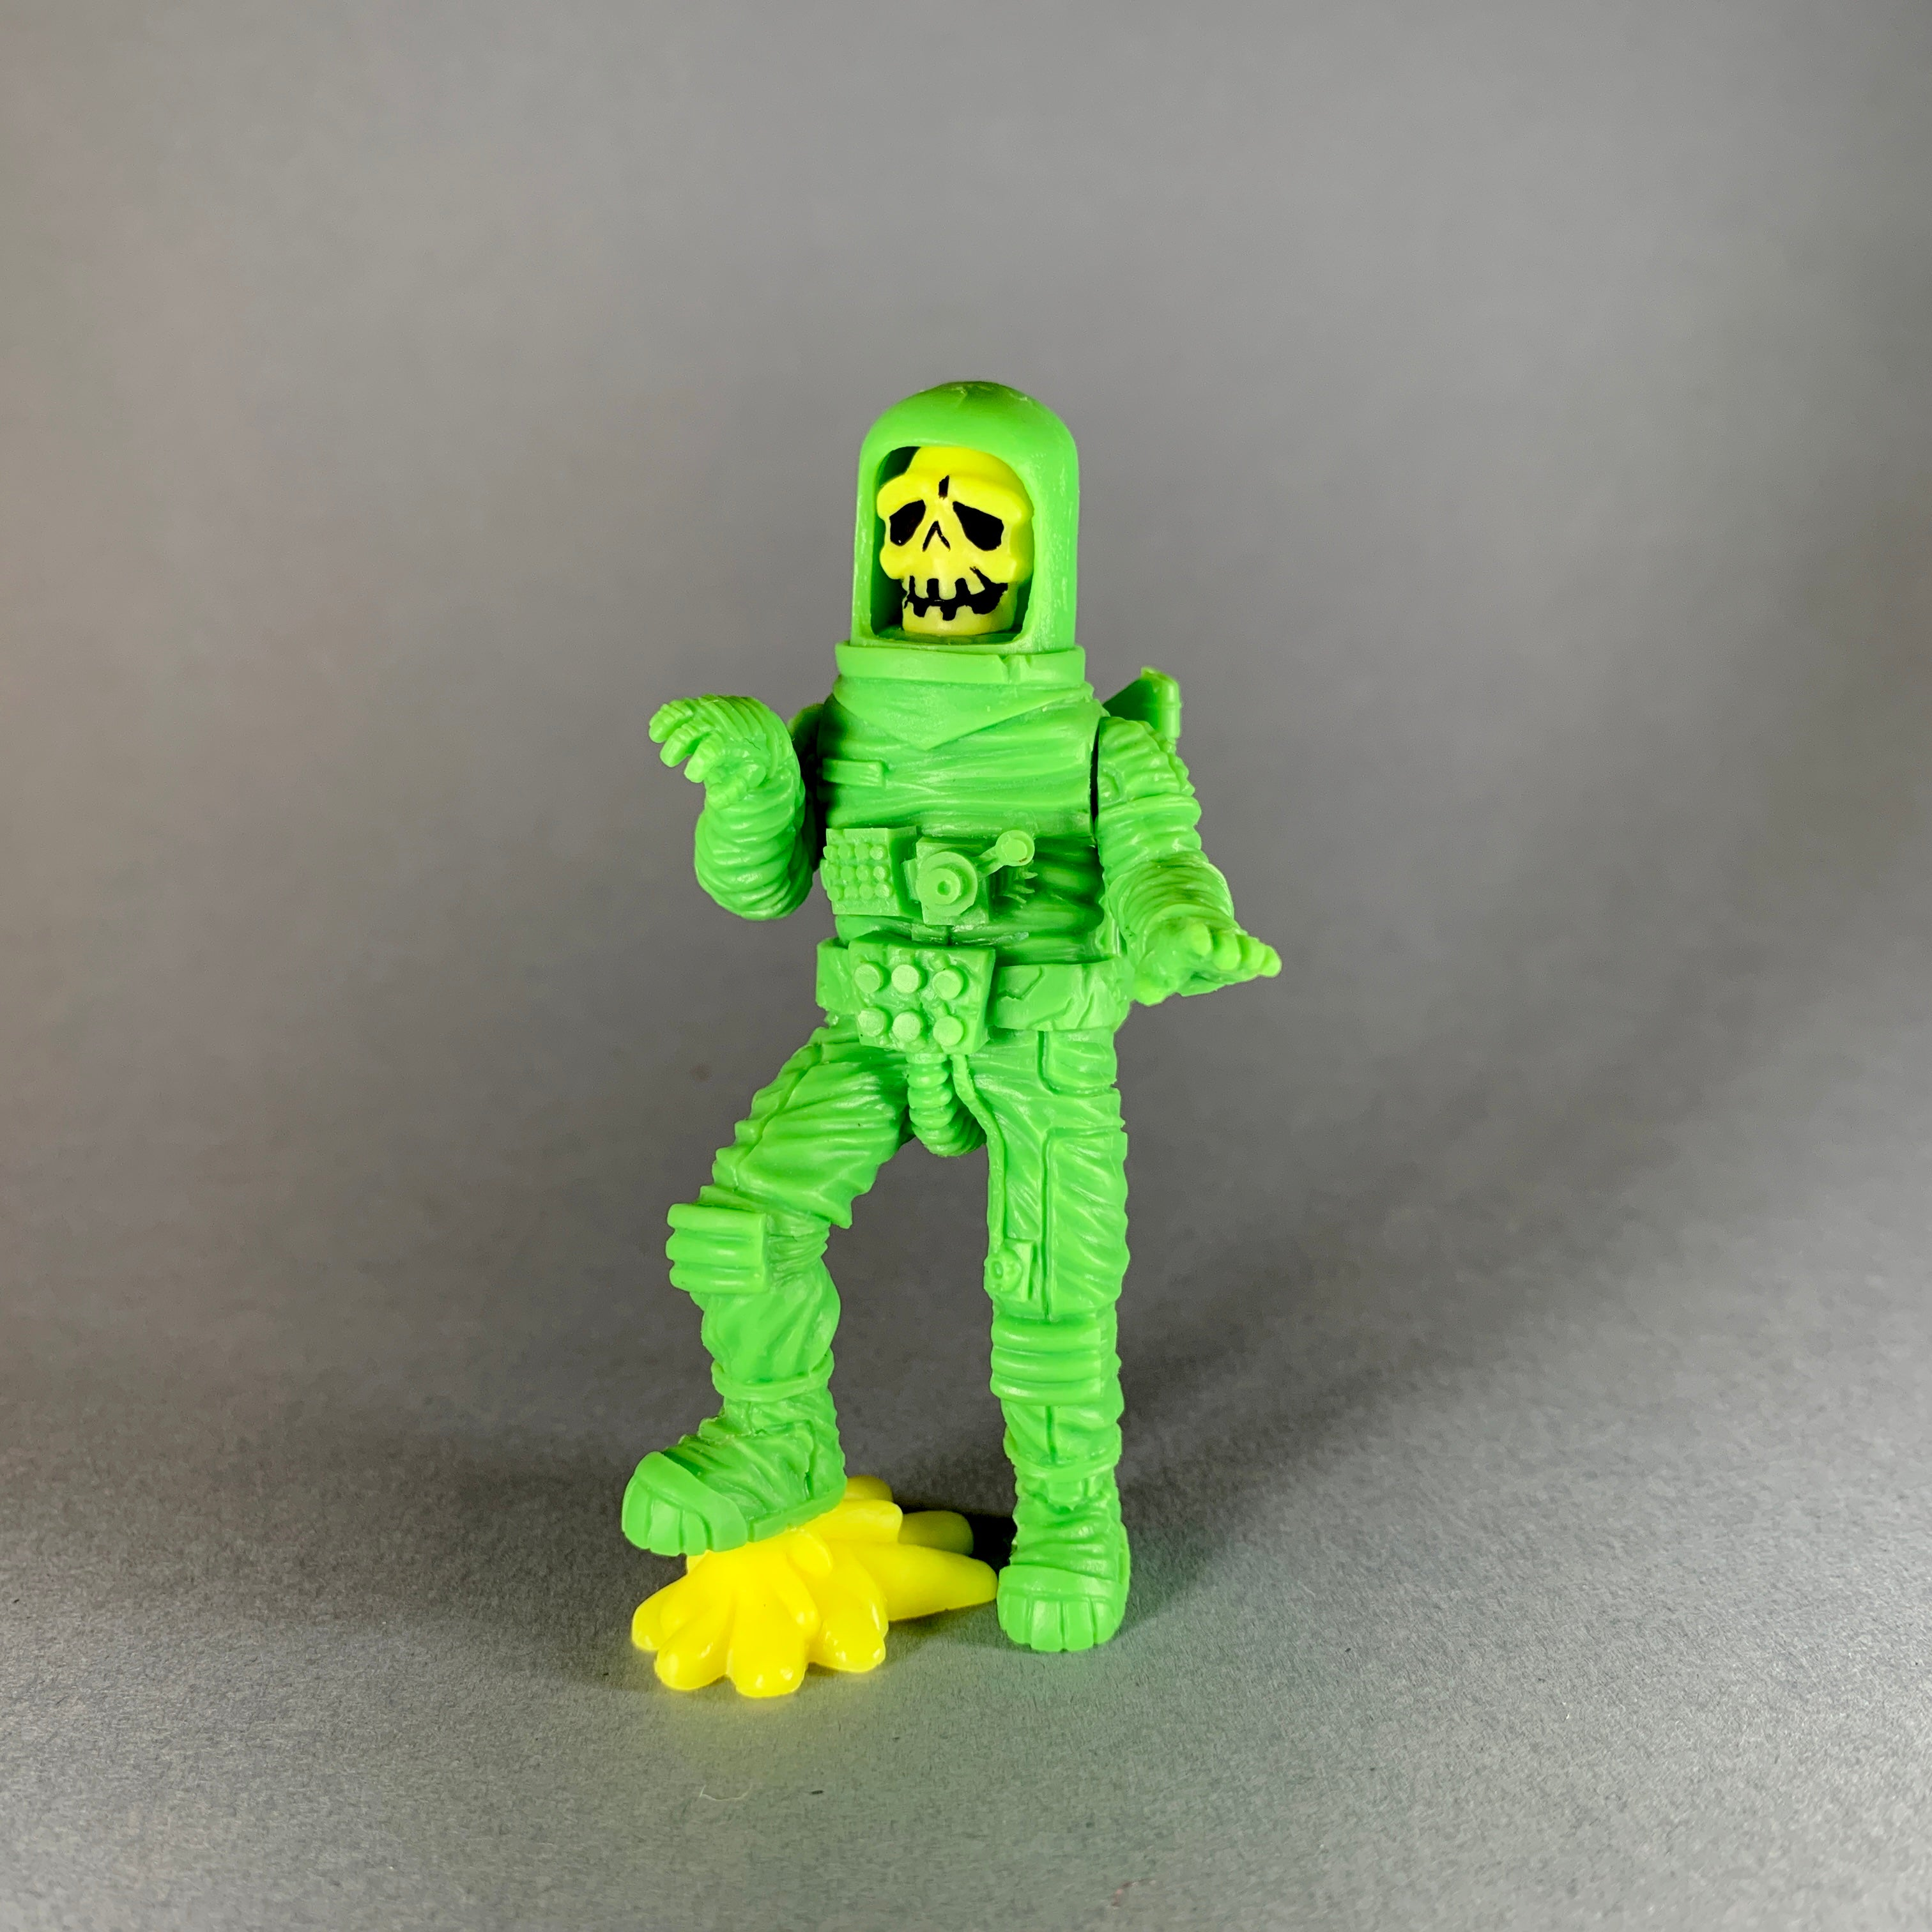 Cosmos Cold: The Horrid One | Green/yellow (PRE-SALE ships in Q3 2020) [Limited stock]